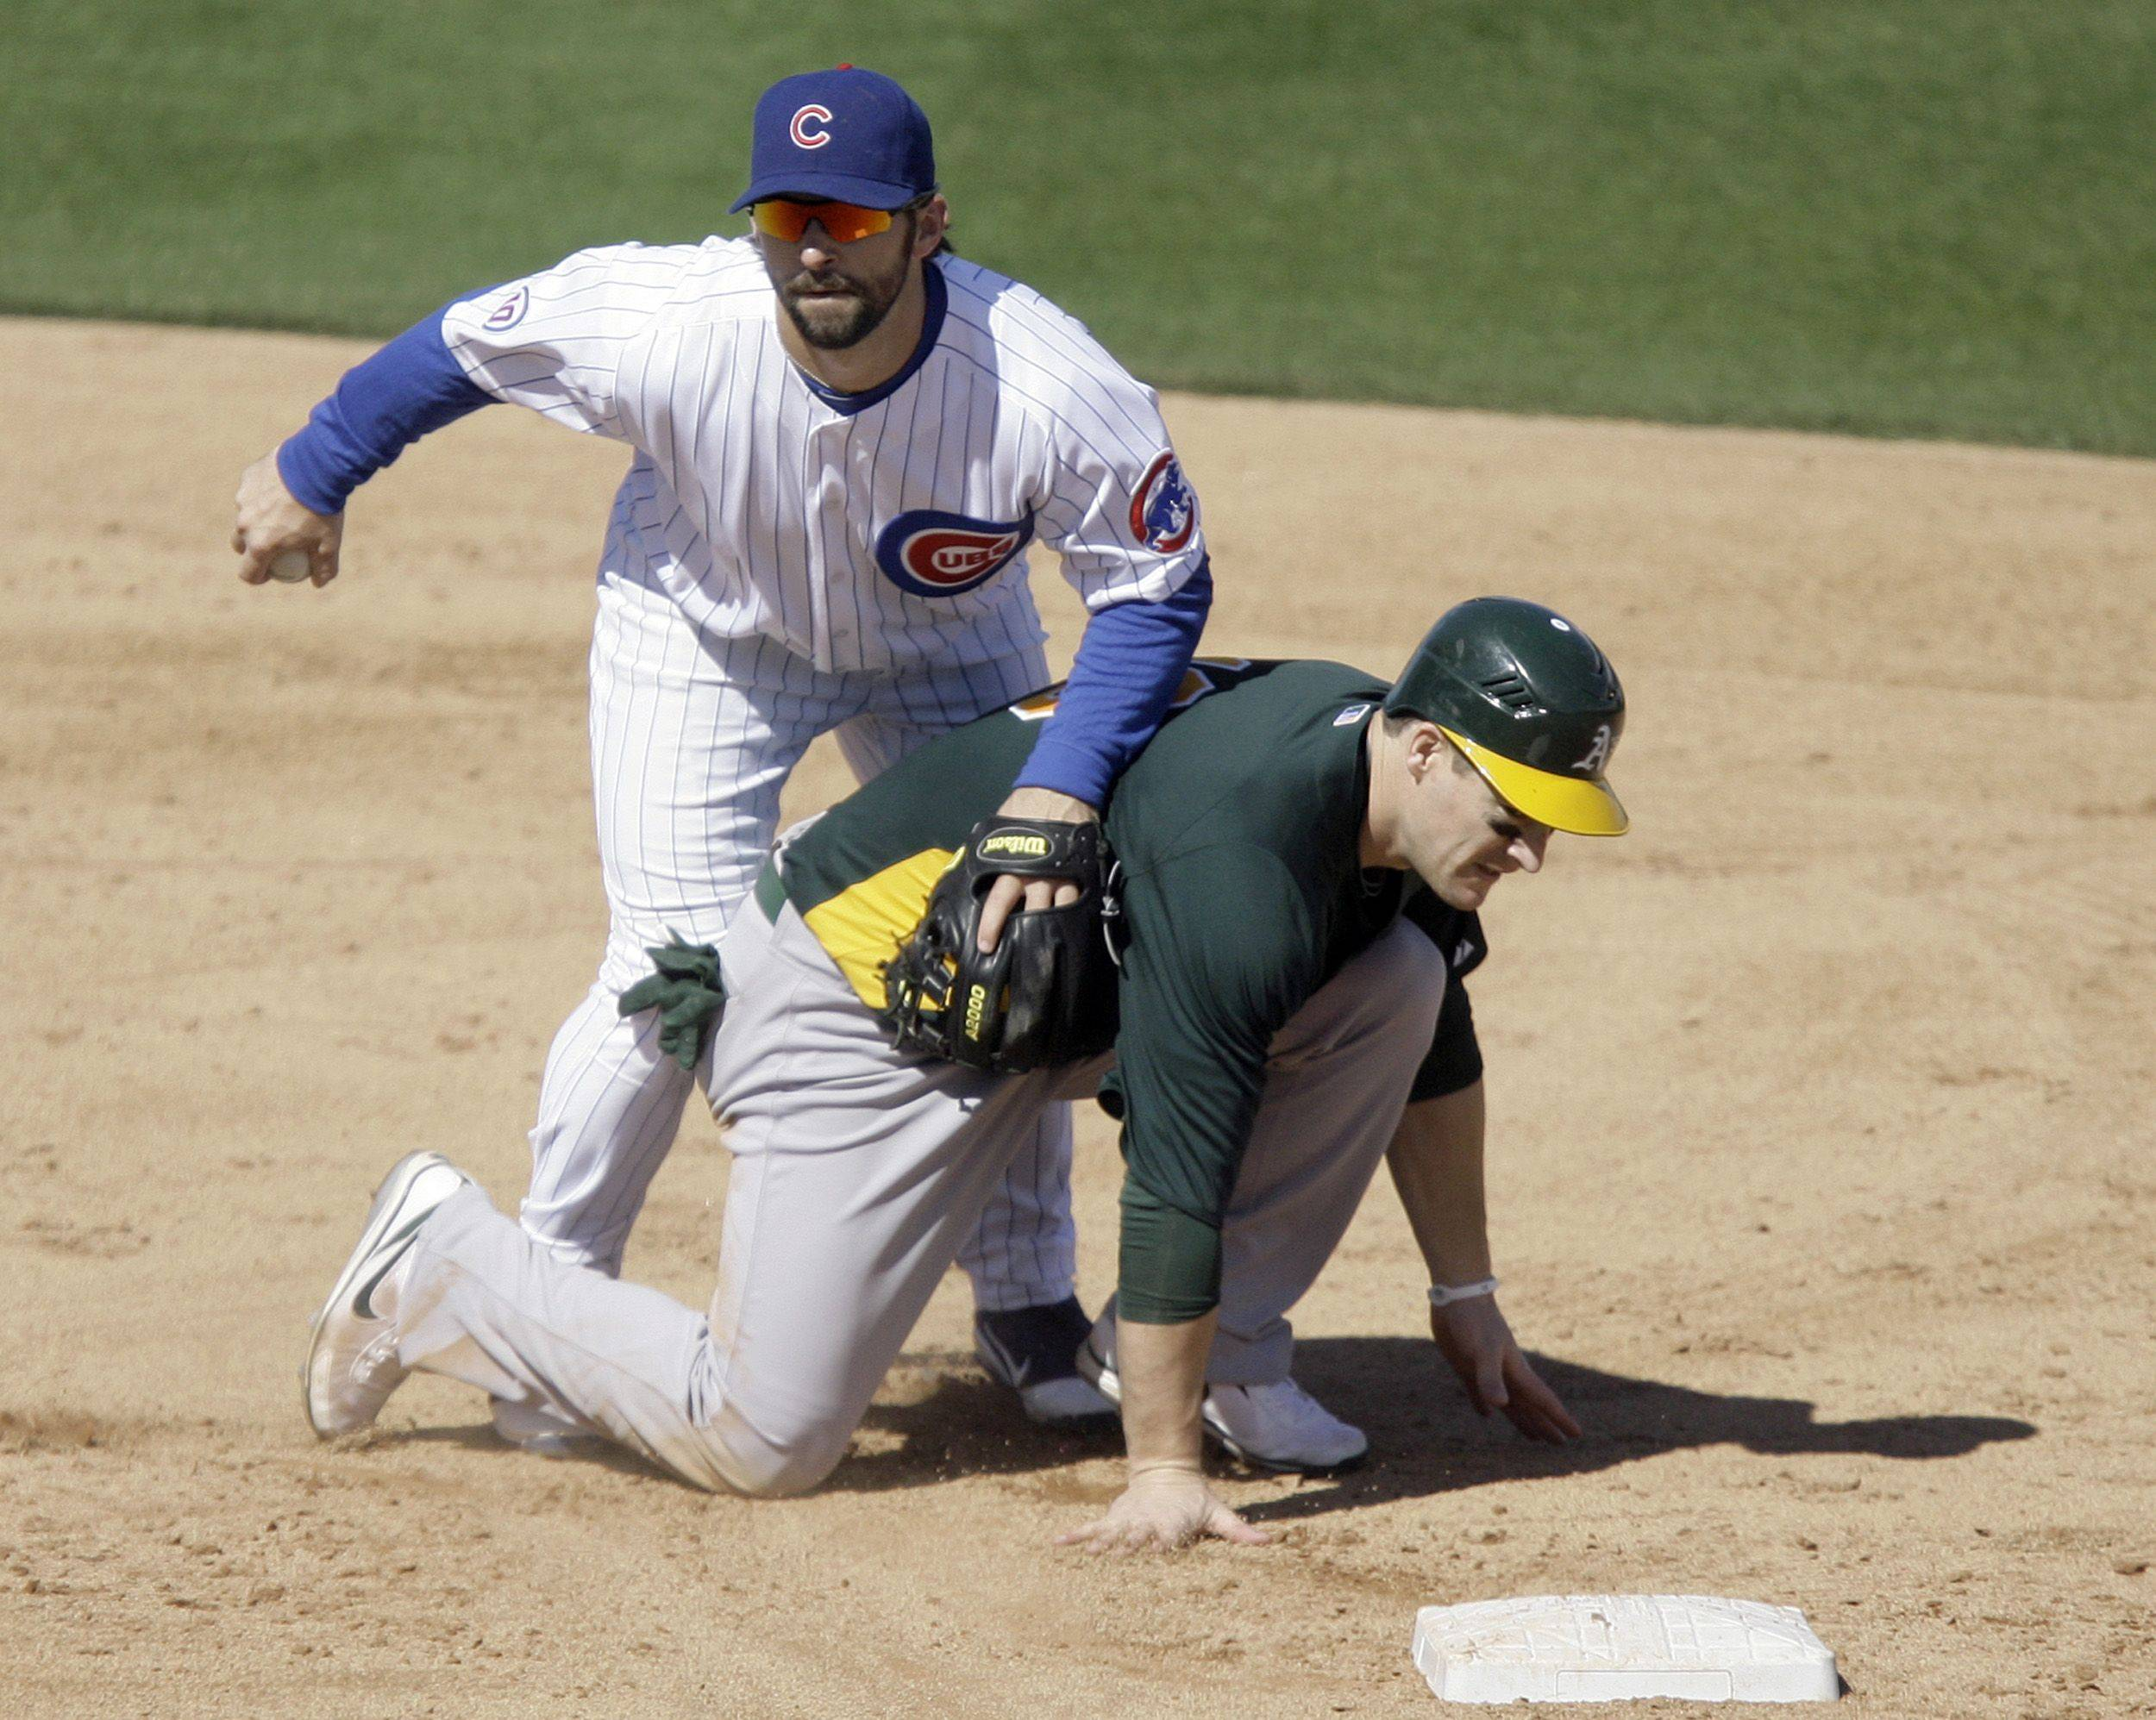 Chicago Cubs second baseman Blake DeWitt, left, is forced to hang onto the ball as Oakland Athletics' Josh Willingham, right, slides to break up the double play during the third inning of a spring training baseball game Sunday, Feb. 27, 2011, at HoHoKam Park in Mesa, Ariz.